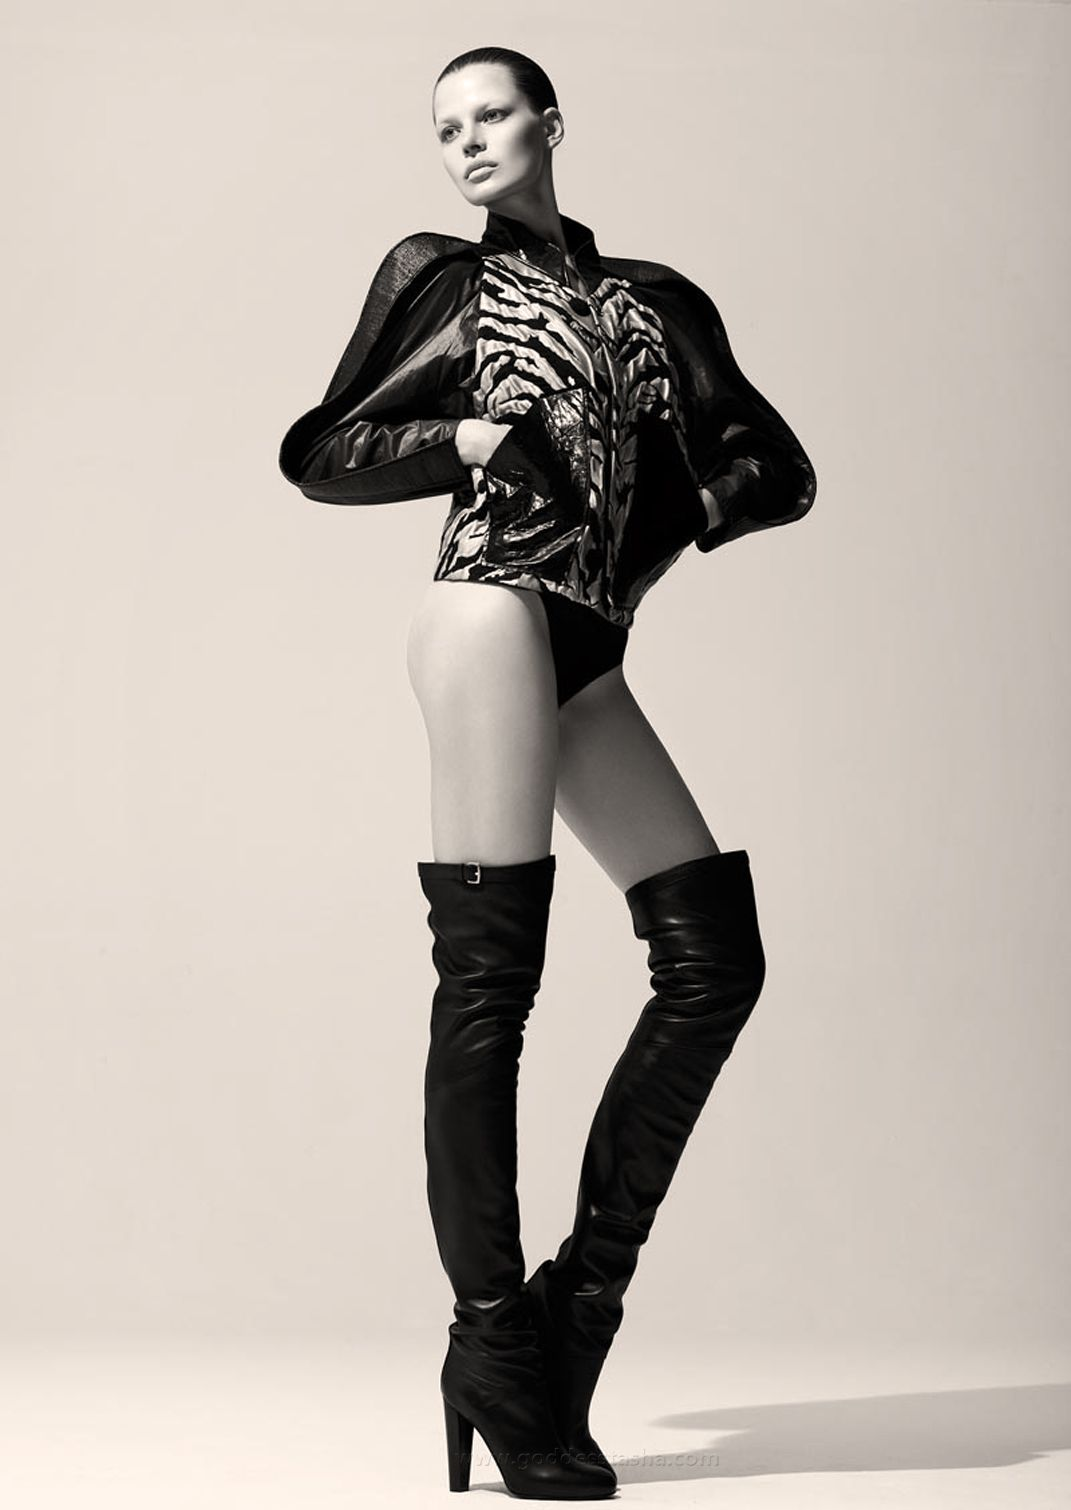 Thigh boots